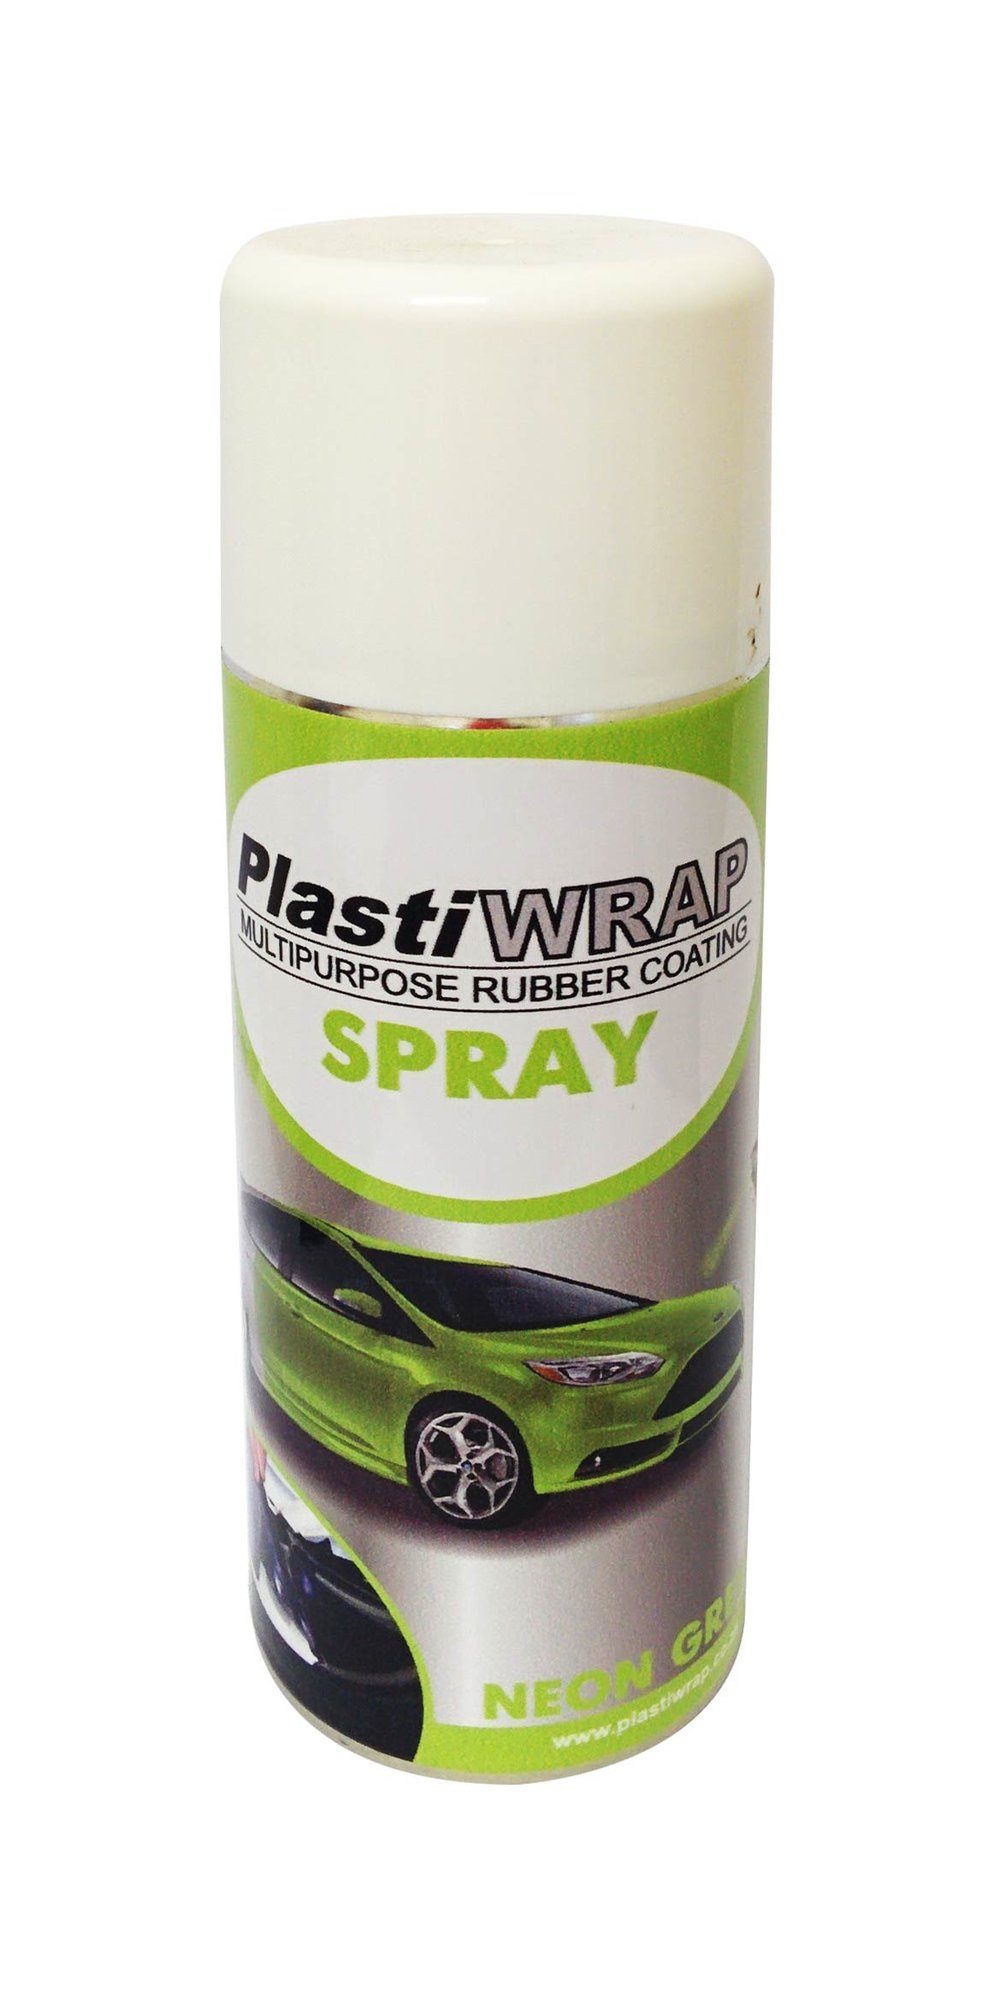 Plastiwrap_RubberCoatingSpray.jpg